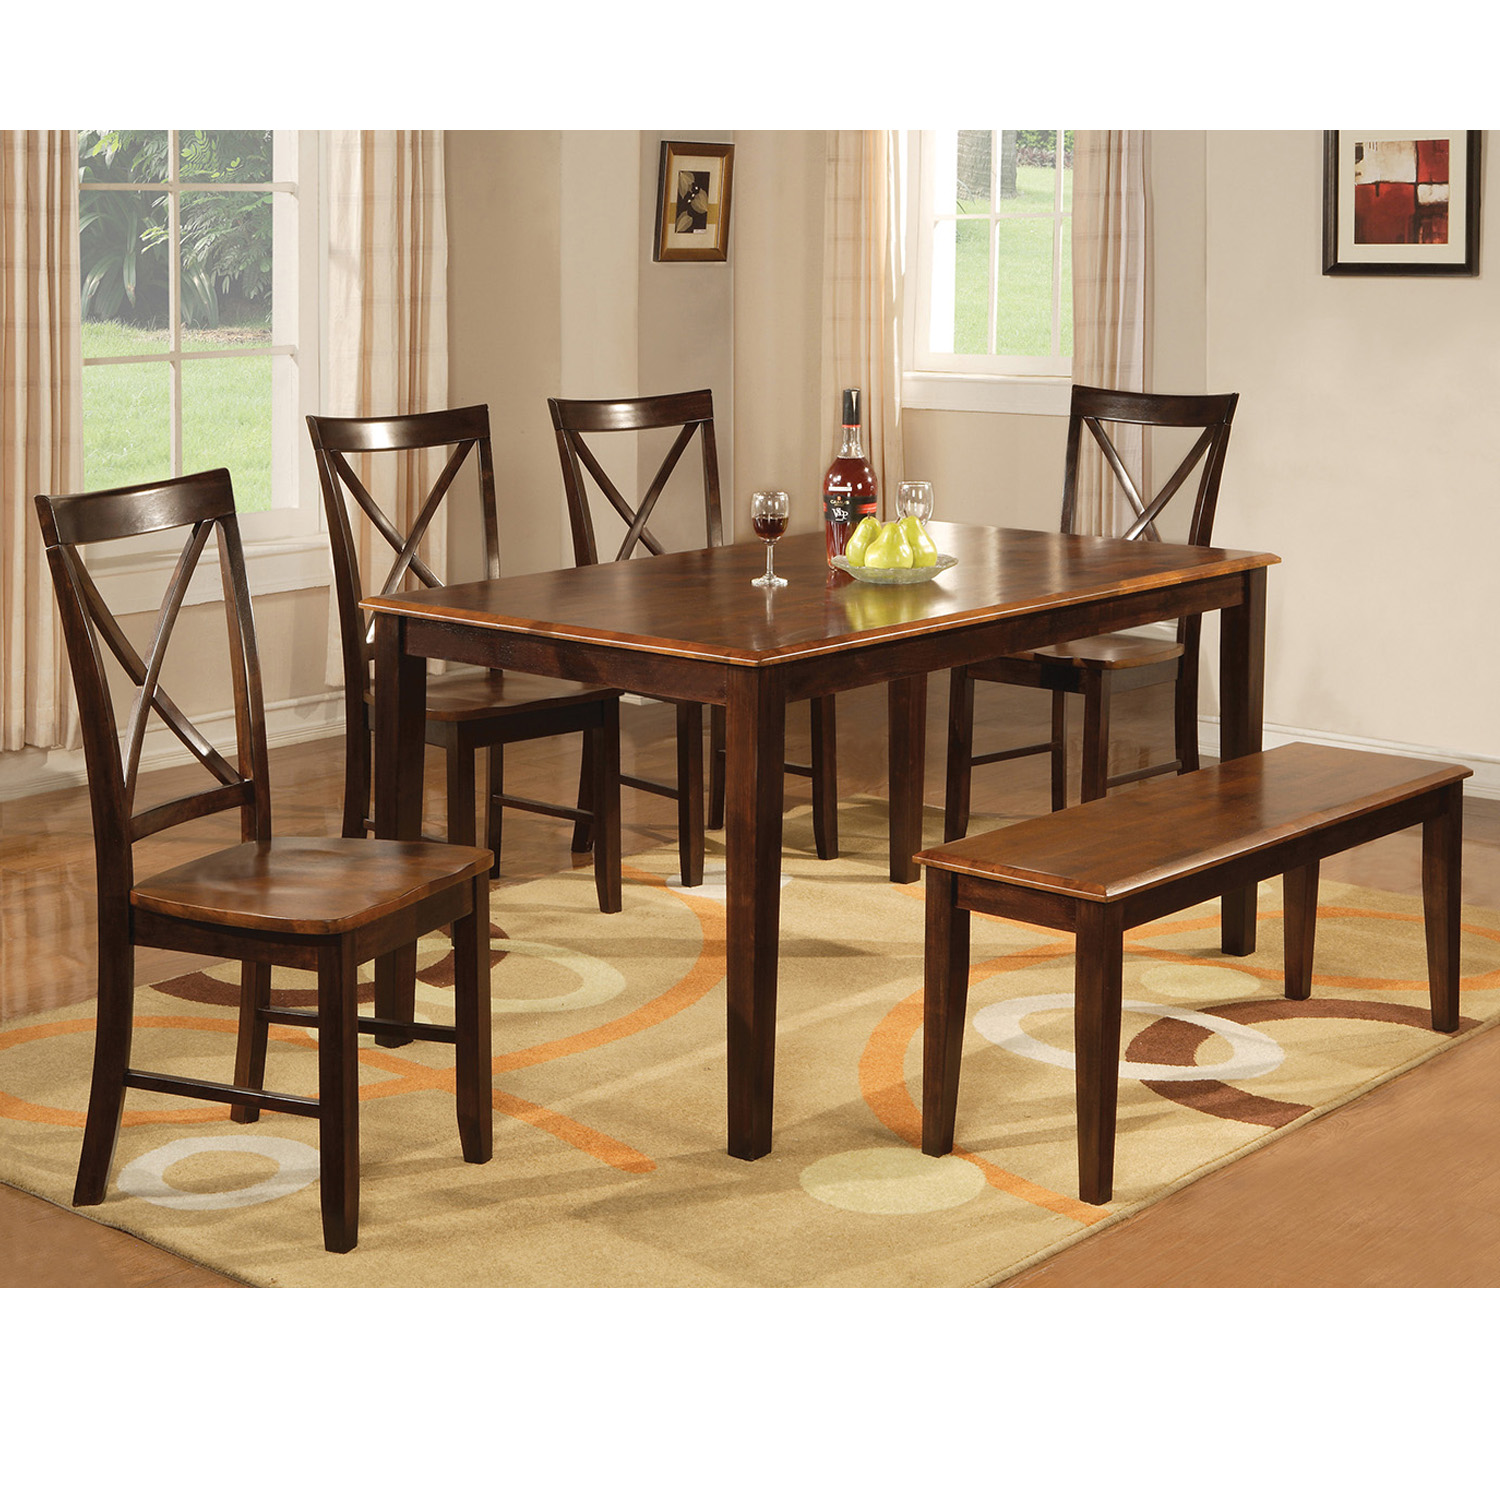 Home Source Nell Mahogany 6 Piece Dining Set with 1 Table, 4 Chairs, and 1 Bench